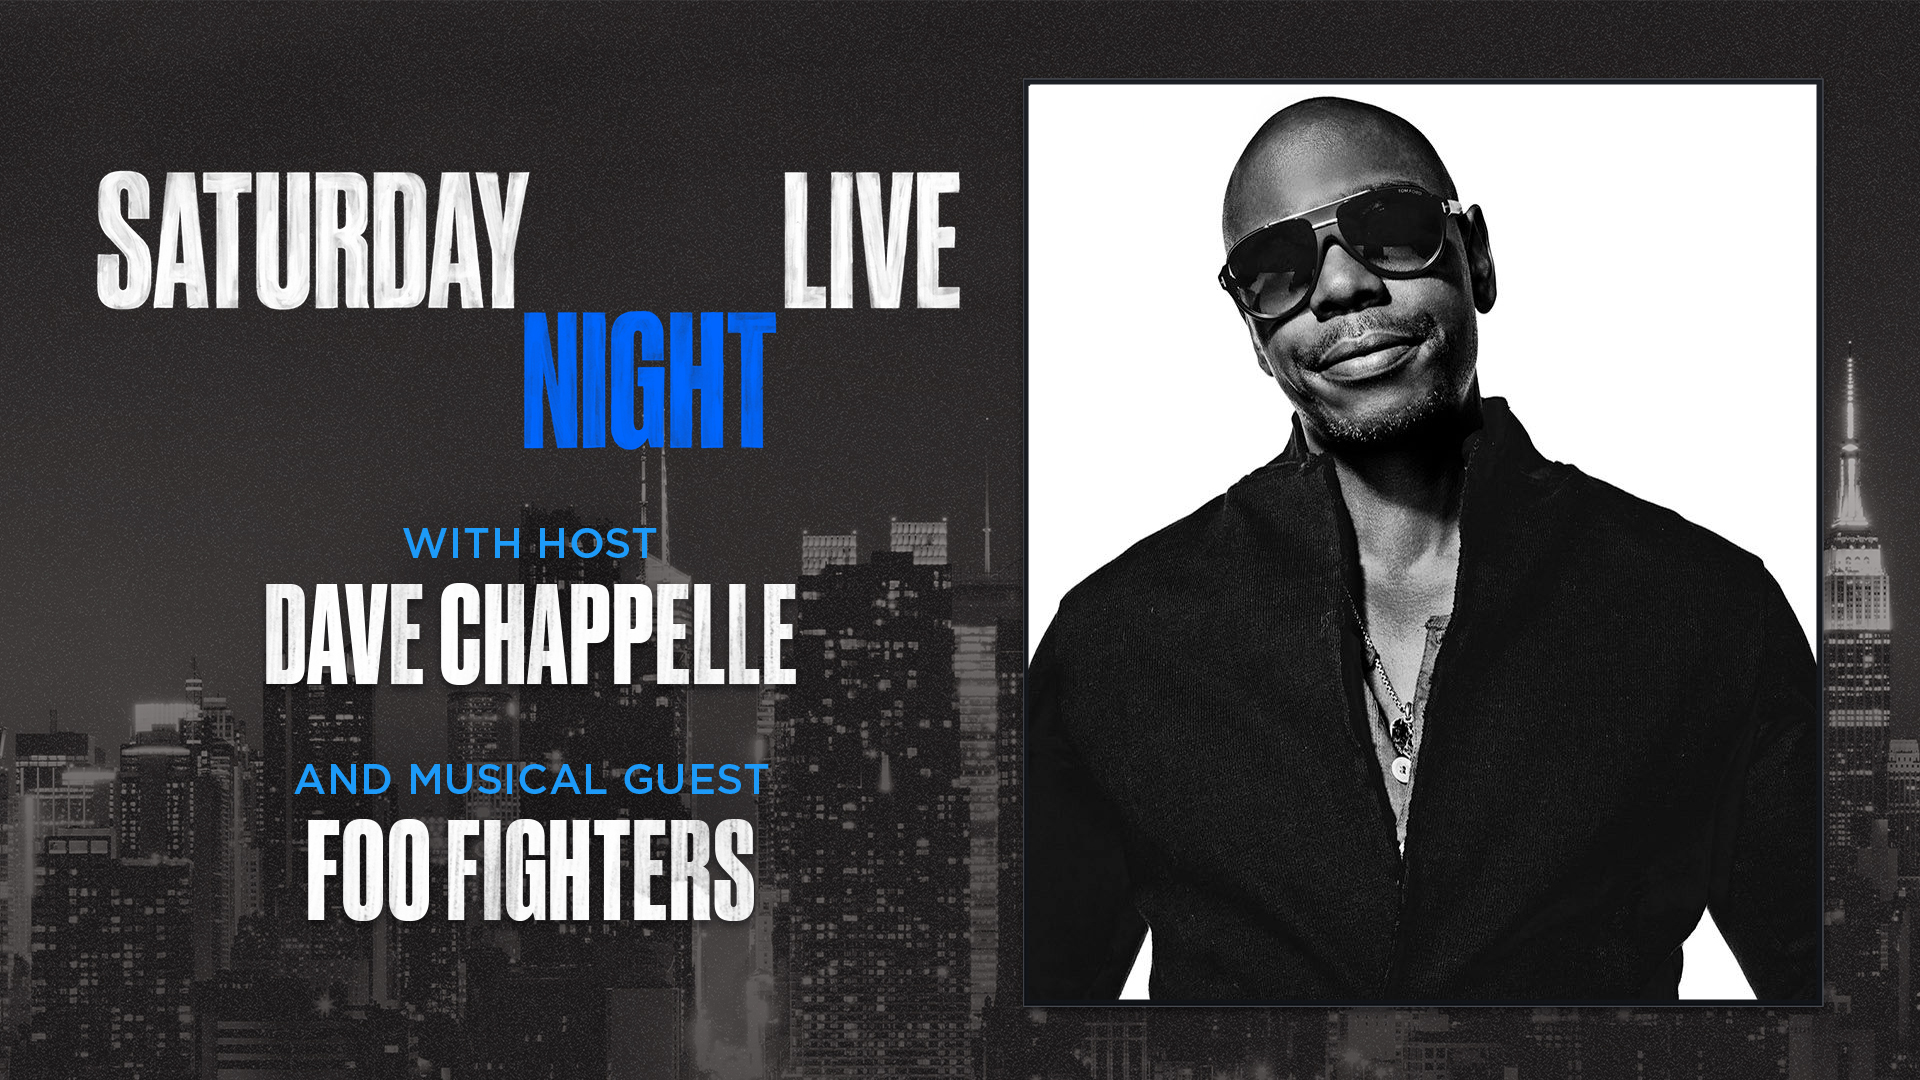 Brproud Dave Chappelle To Host Saturday Night Live